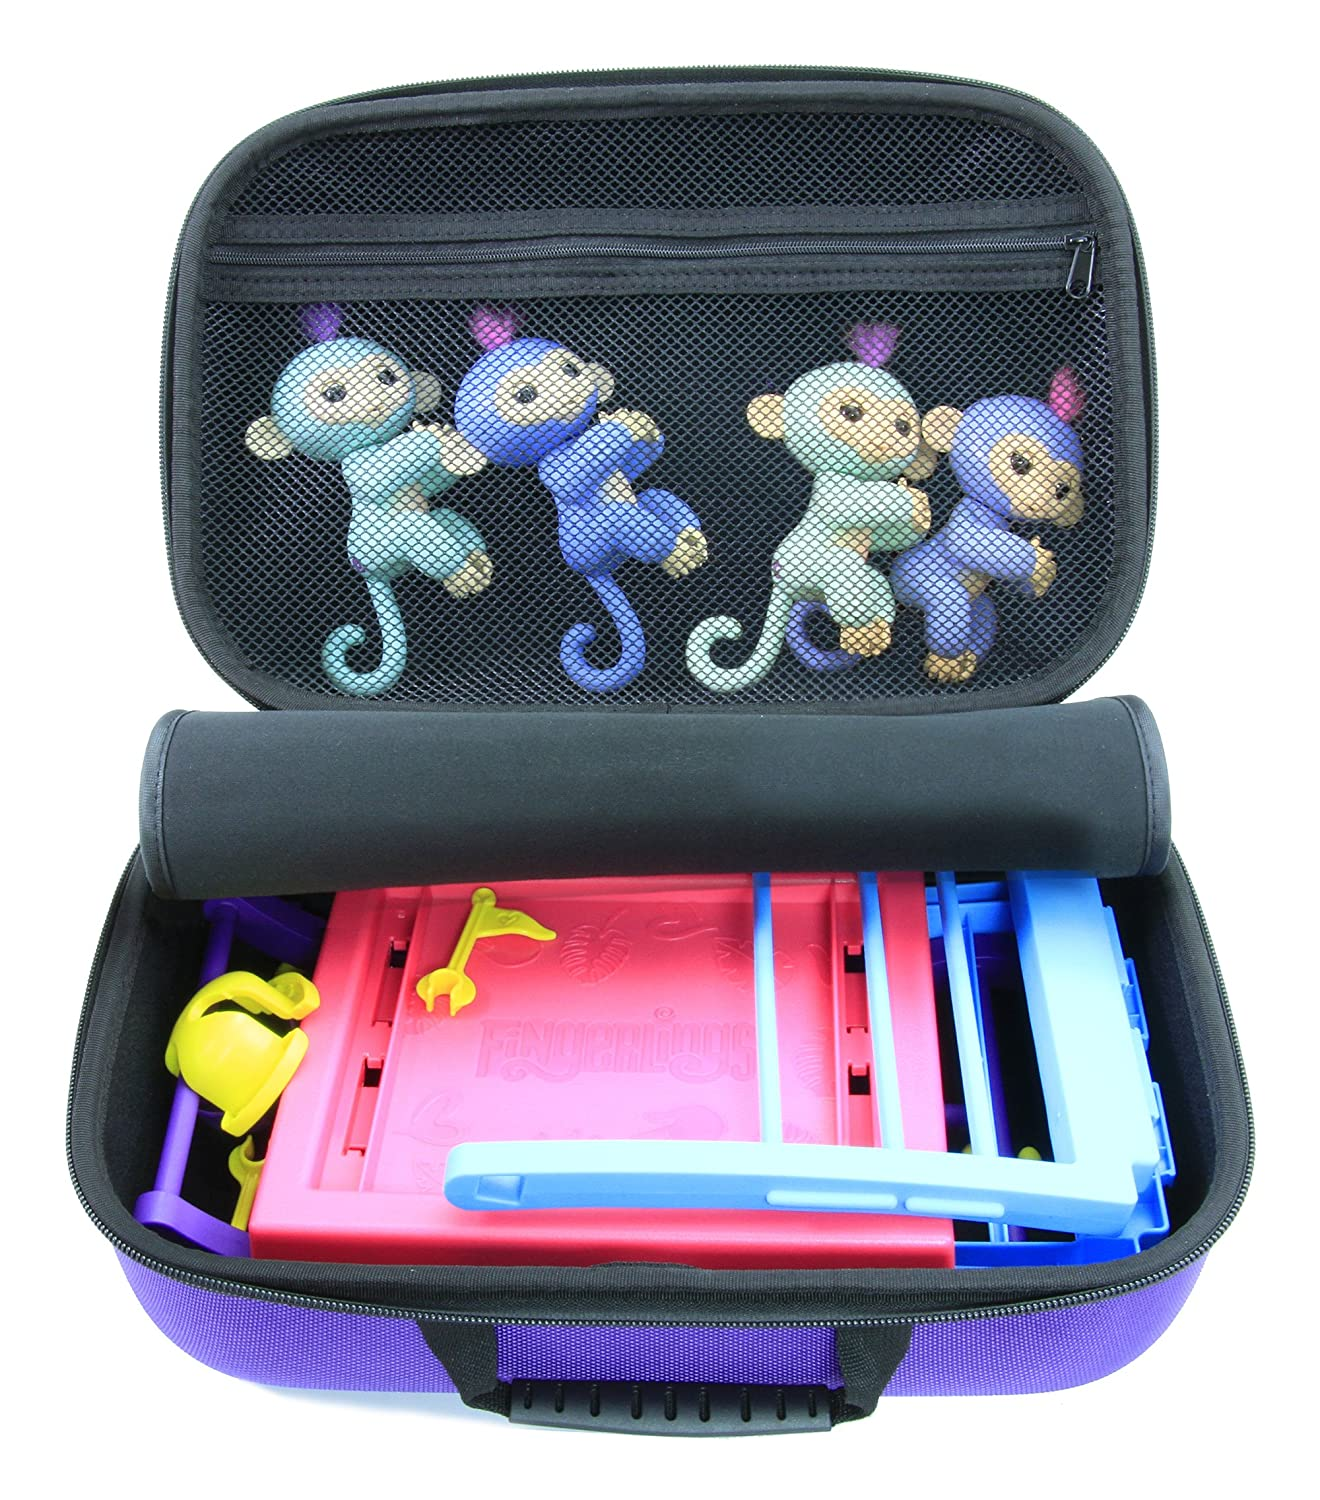 KIDCASE Travel Carry Case Fits Fingerlings Baby Monkey Collector Toys – The Fun Way To Store Your Children's Play Set Collection CASEMATIX